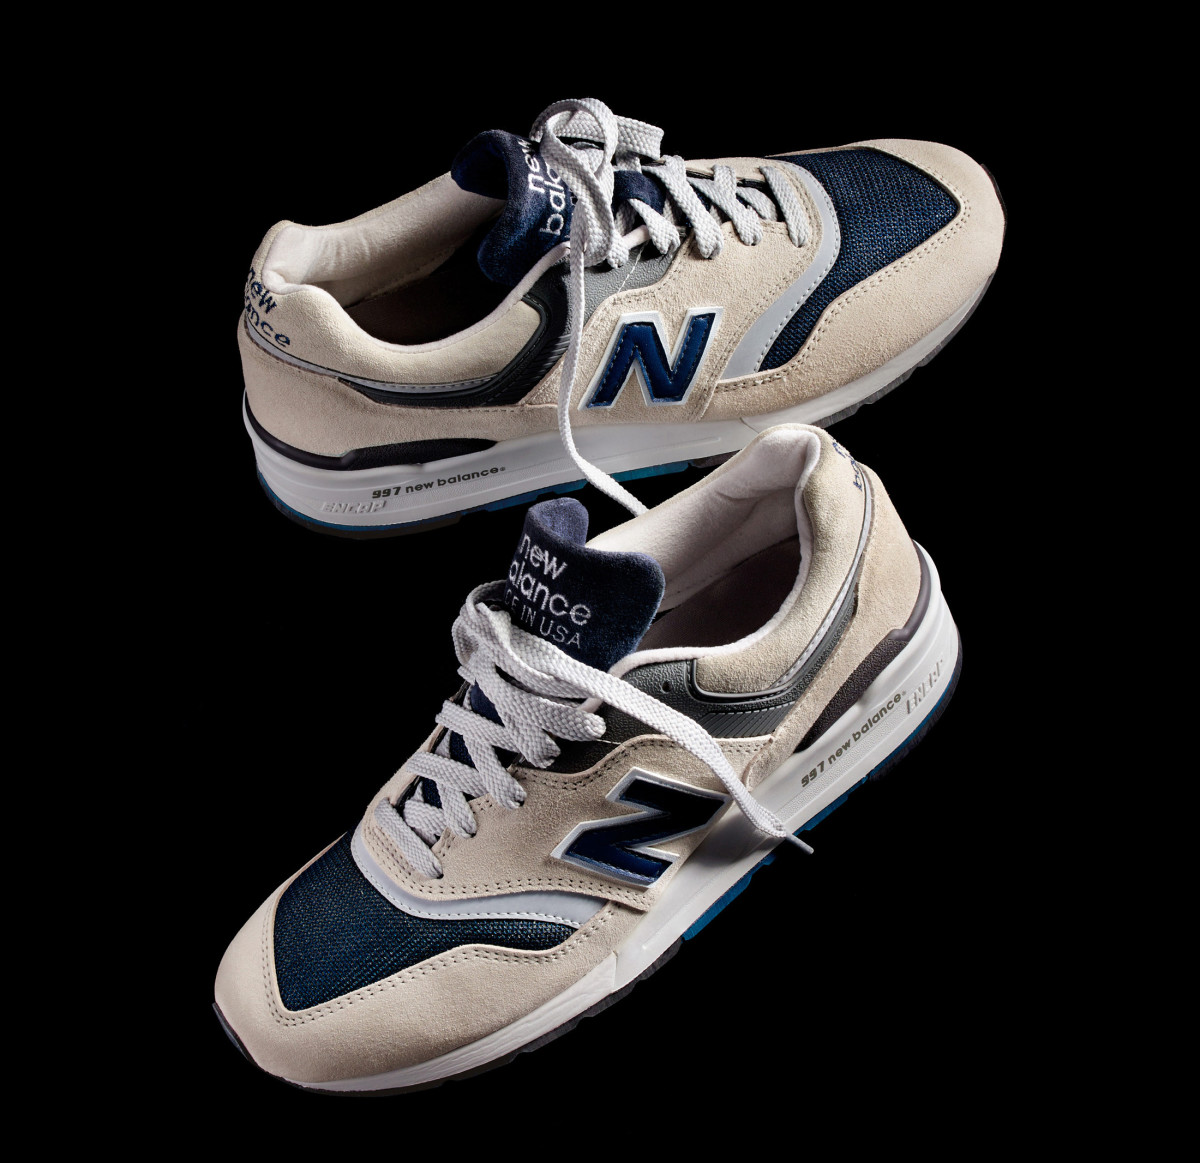 jcrew-new-balance-997-moonshot-02.jpg